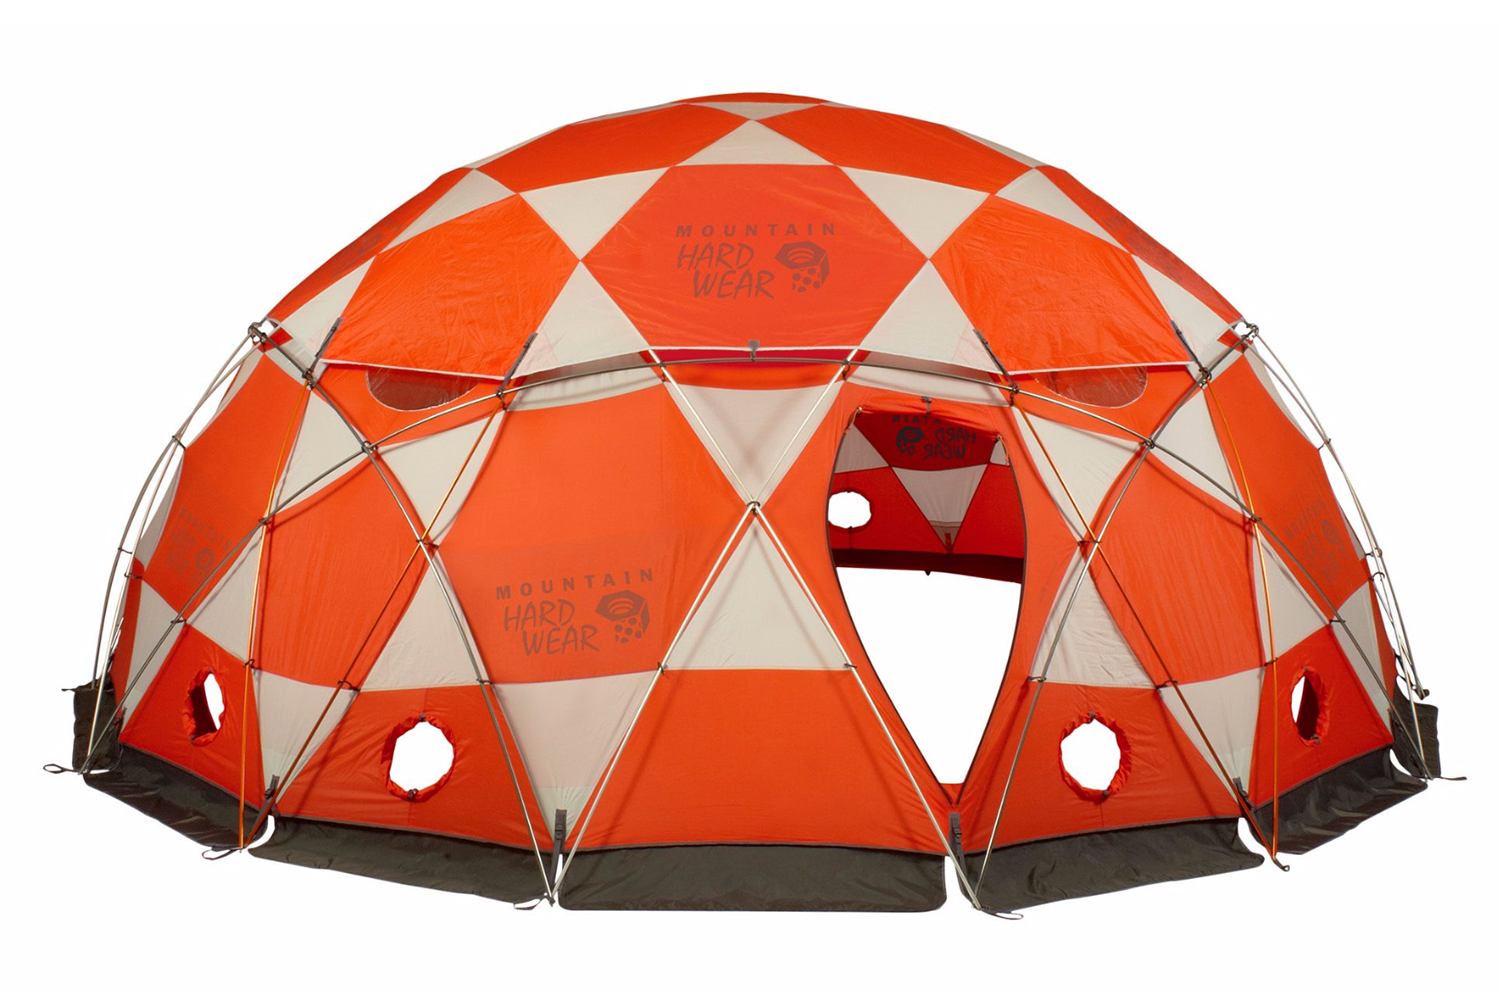 Mountain Hardwear space station tent most expensive gear  sc 1 st  GearJunkie & Worldu0027s Most Expensive Gear